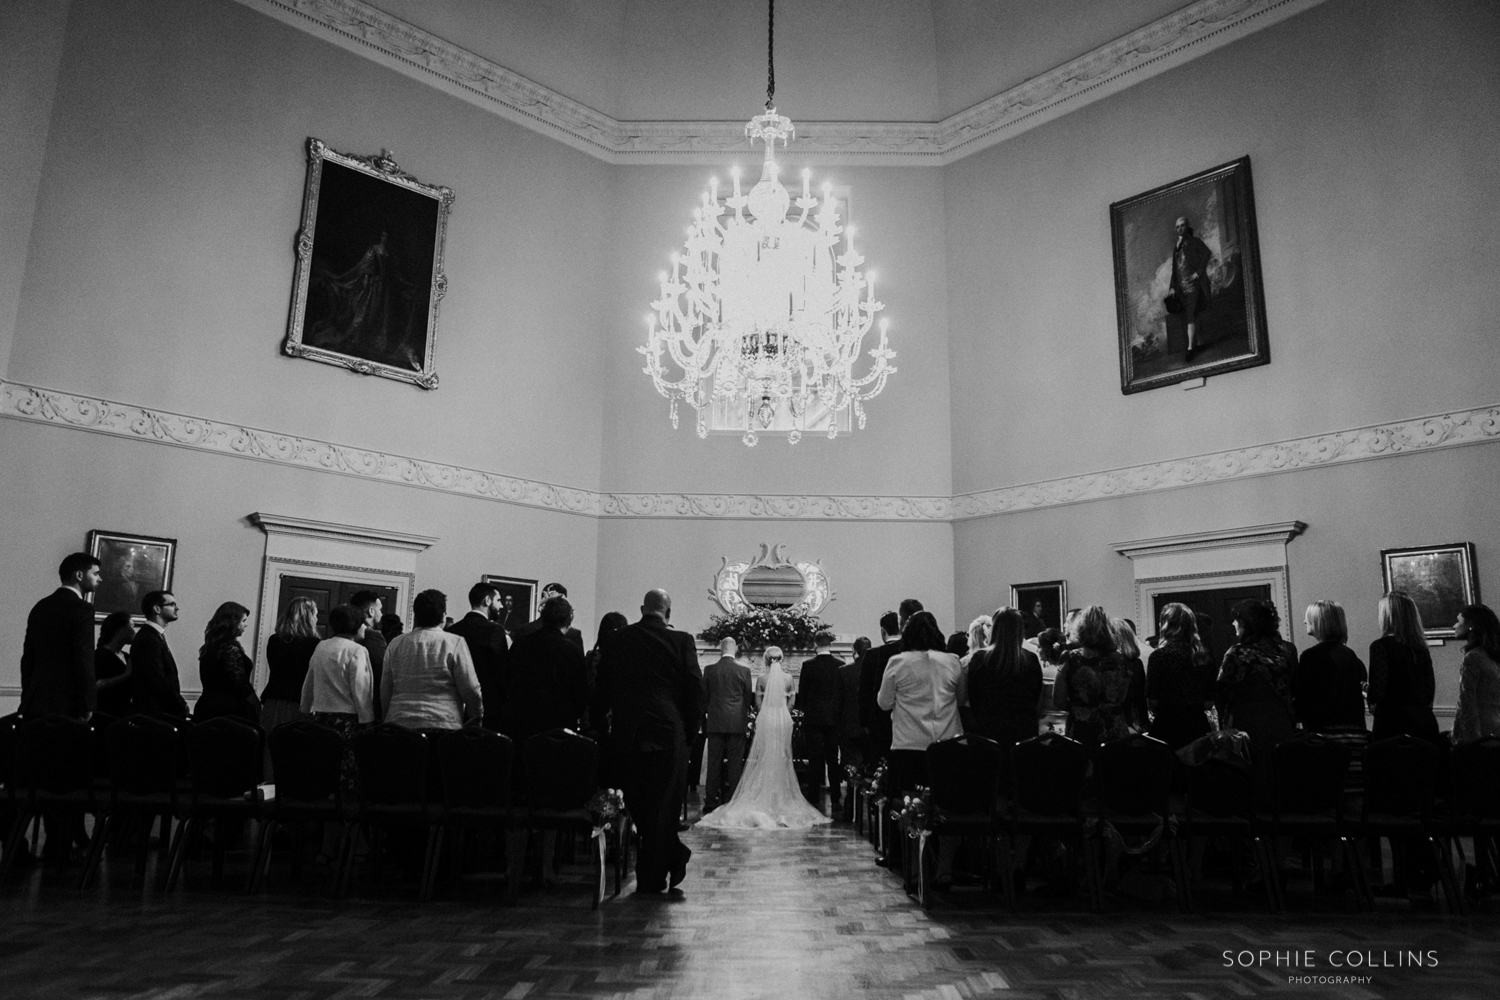 back of the ceremony room